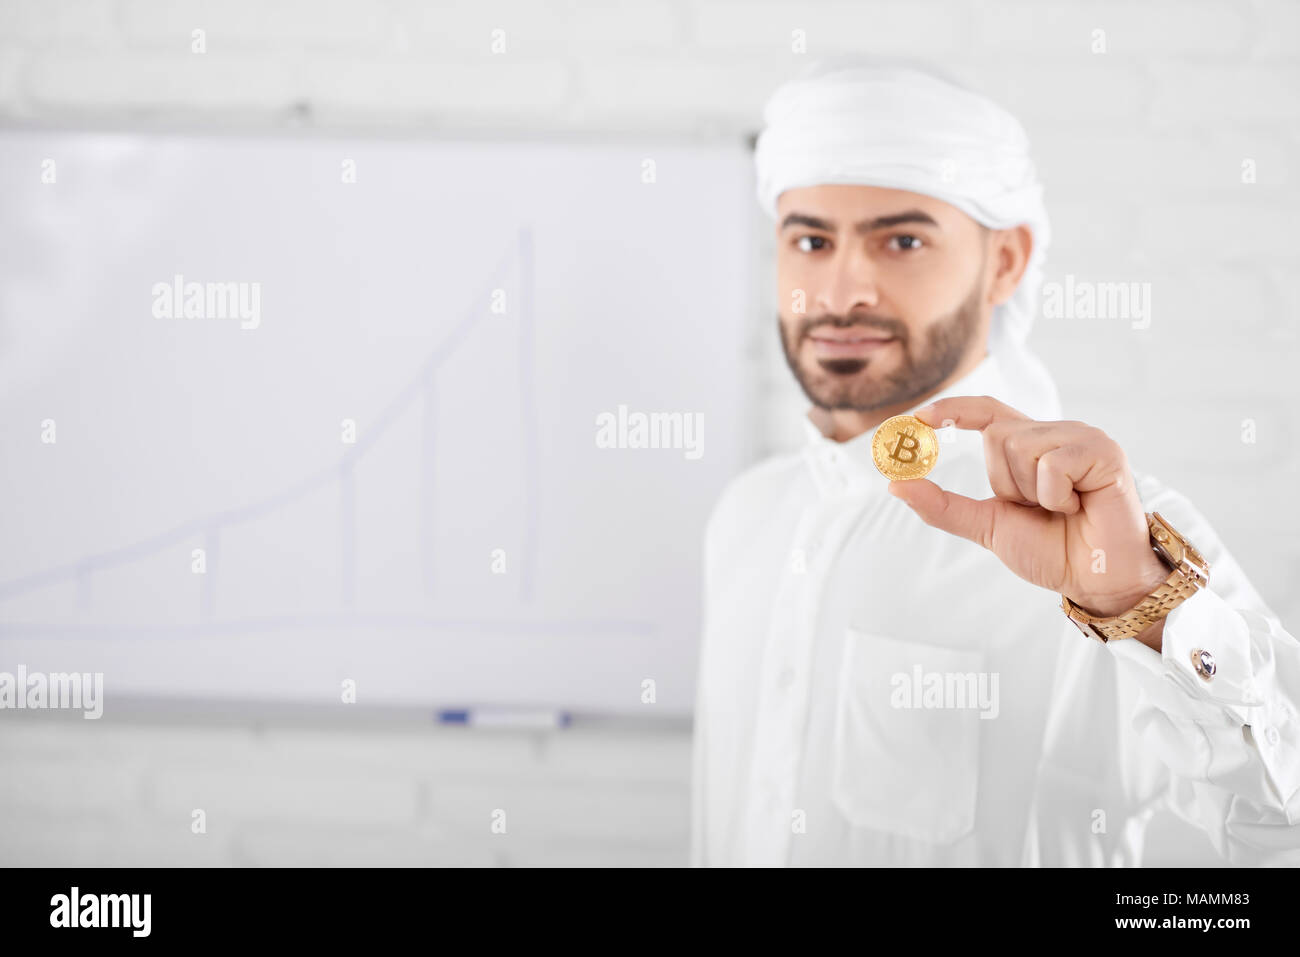 Wealthy handsome muslim male model in traditional Islamic clothing holding golden bitcoin in front of white board wall. Selective focus, blurred background, horizontal shot. Concept of cryptocurrency. - Stock Image